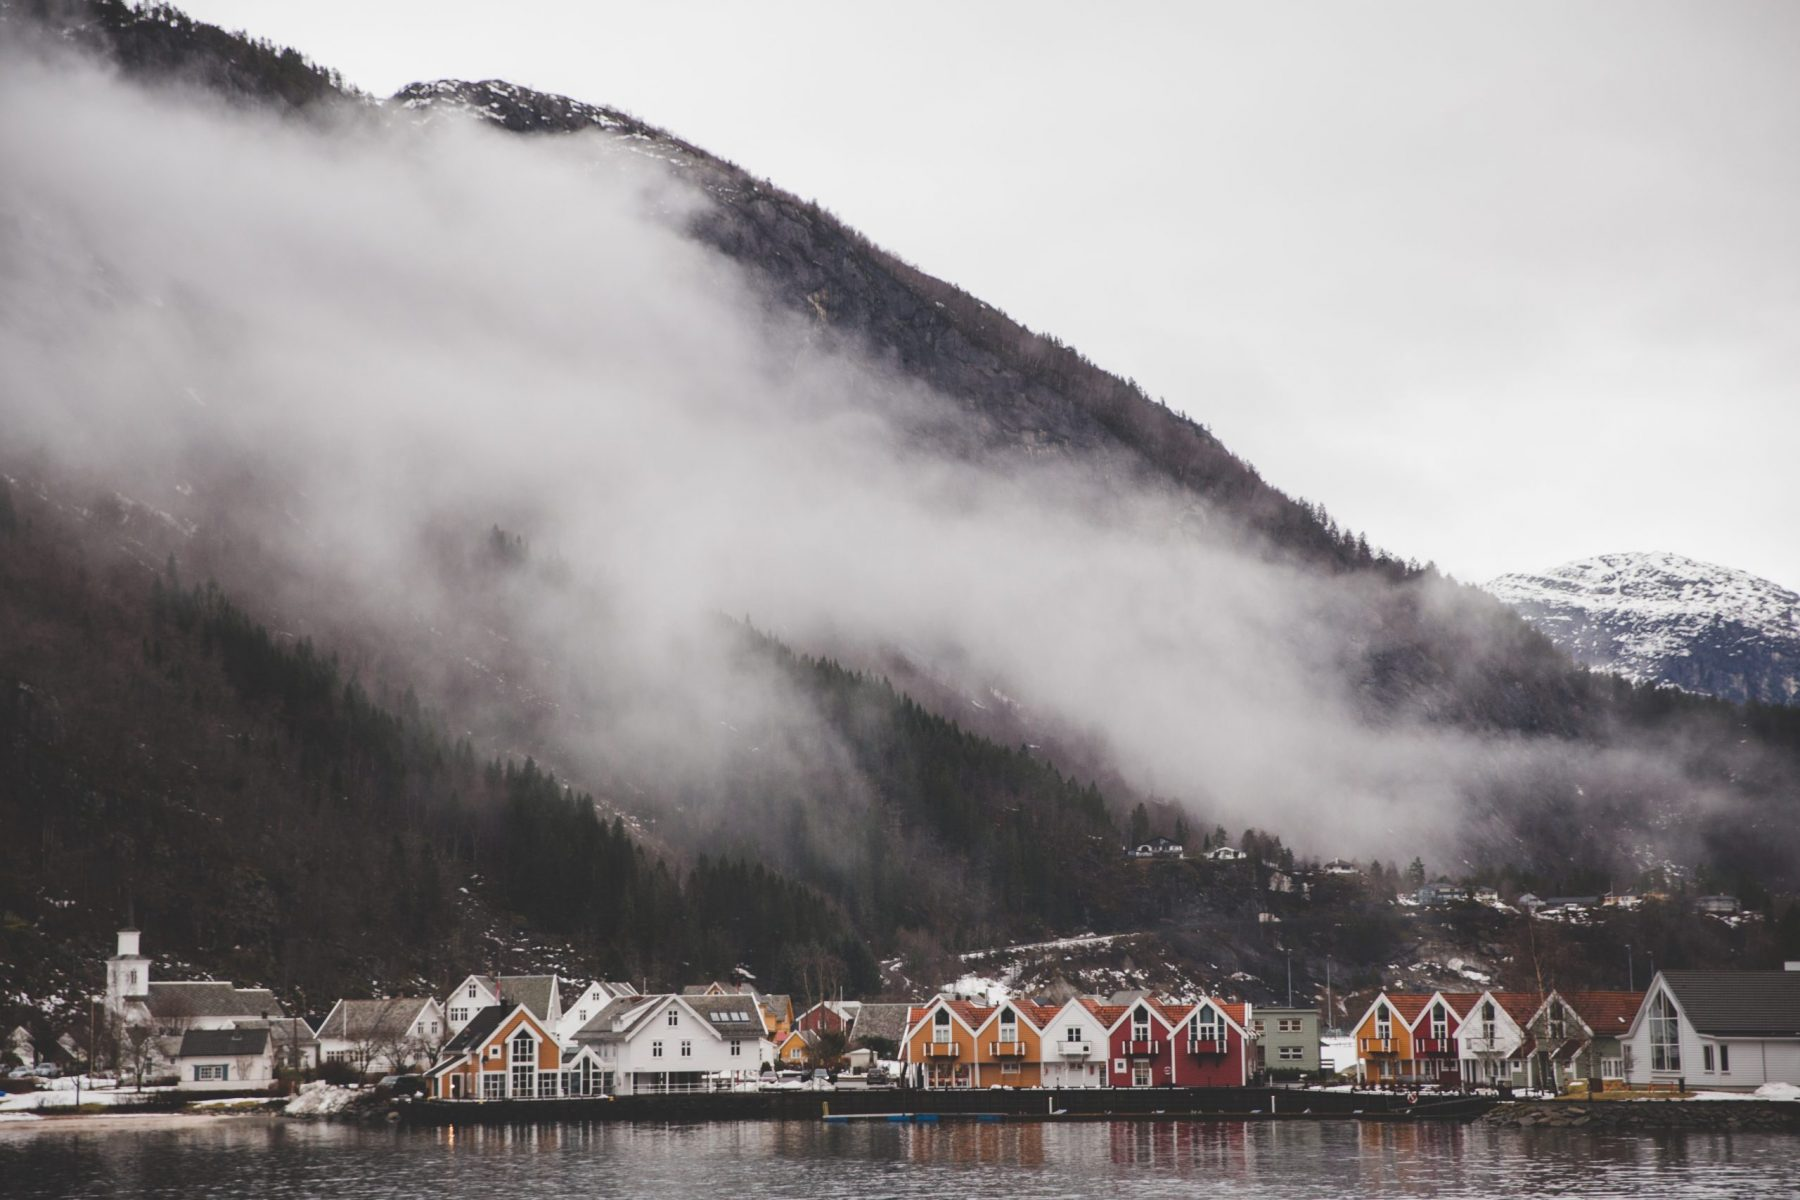 Fog and mountains on a fjord cruise in the Osterfjord in Bergen, Norway in February